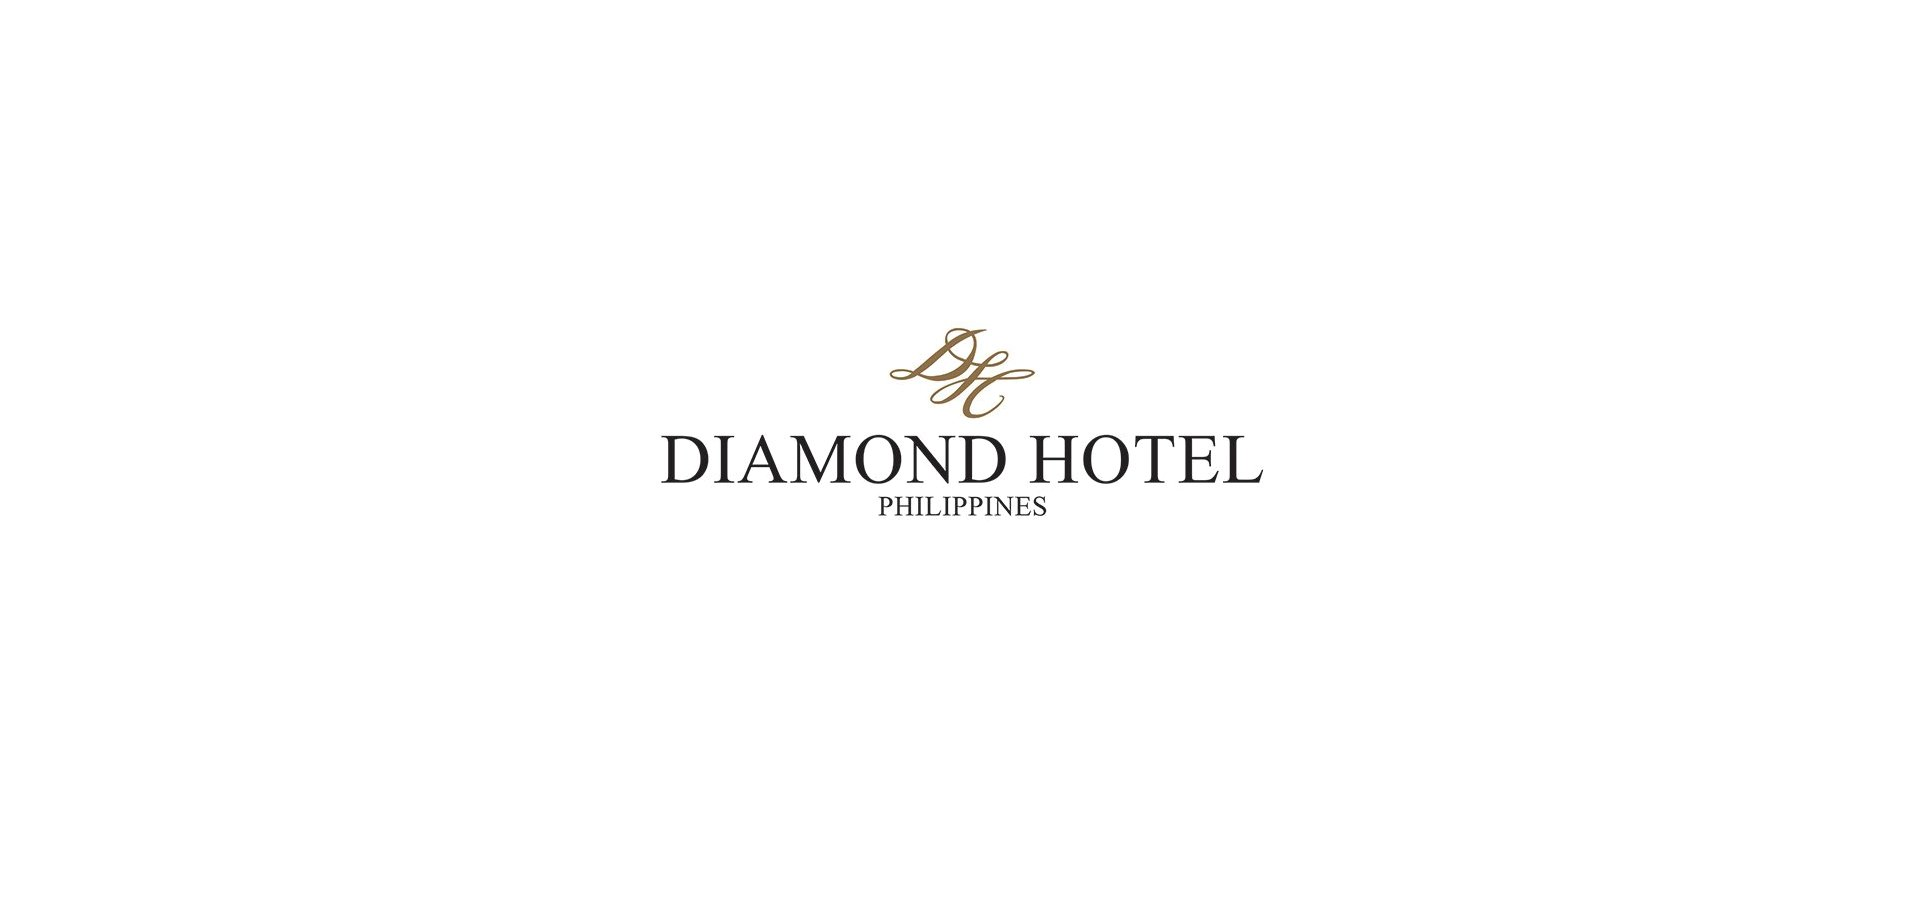 Careers - 5 Star Hotels In The Philippines - Diamond Hotel